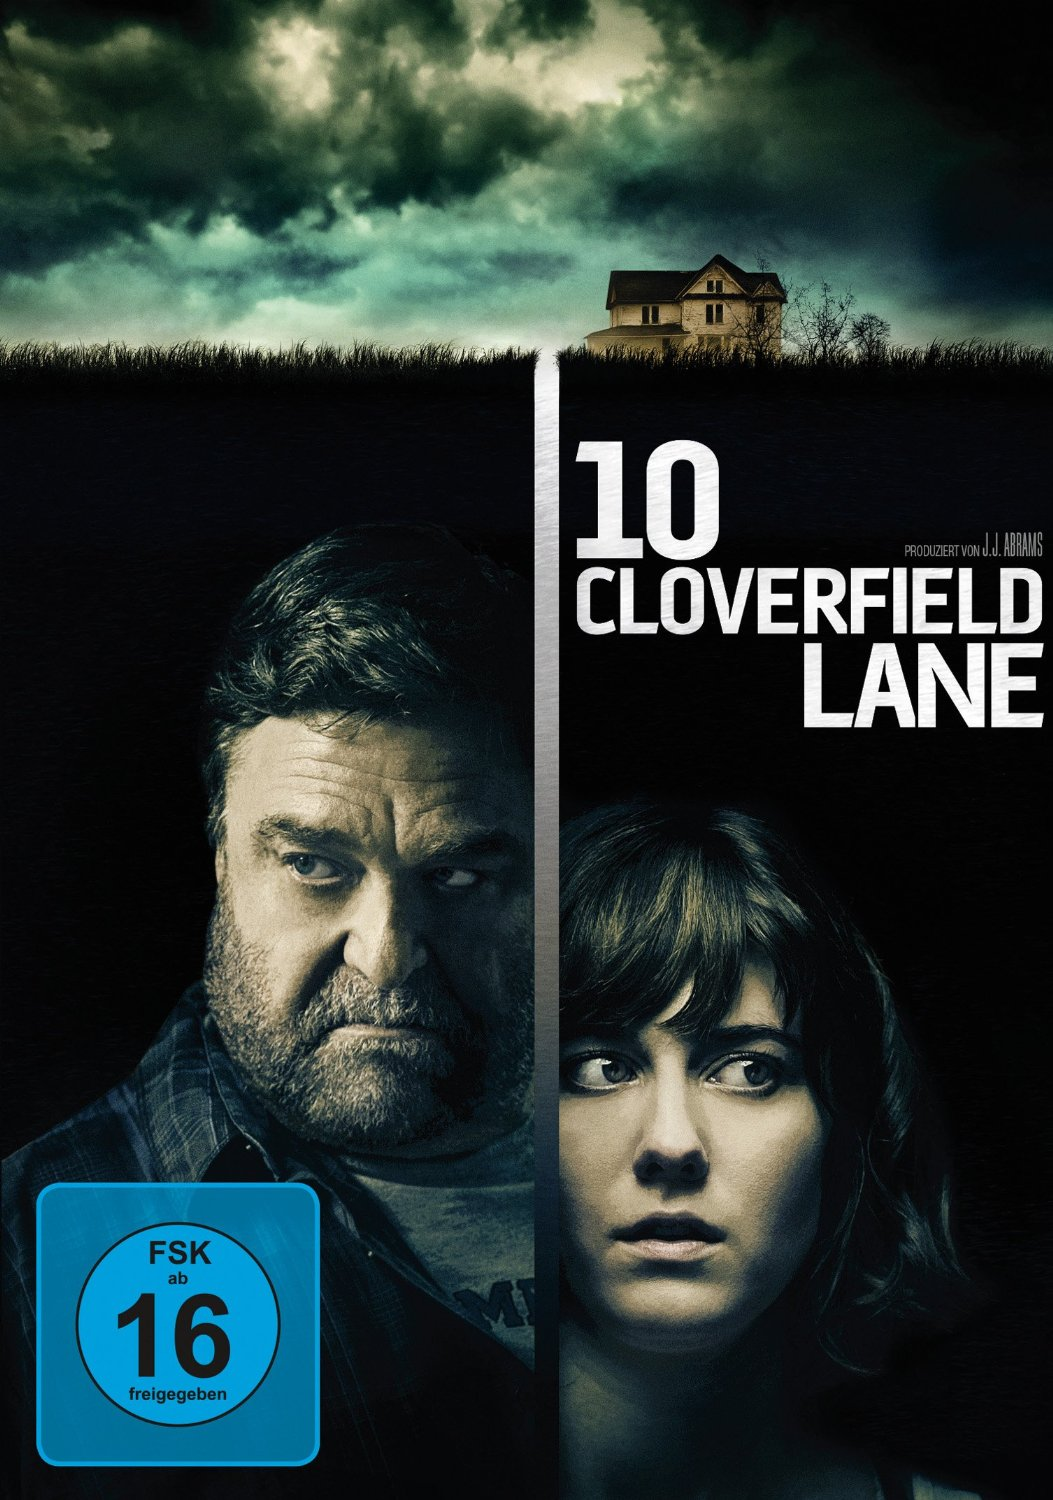 DVD-Cover von 10 Cloverfield Lane